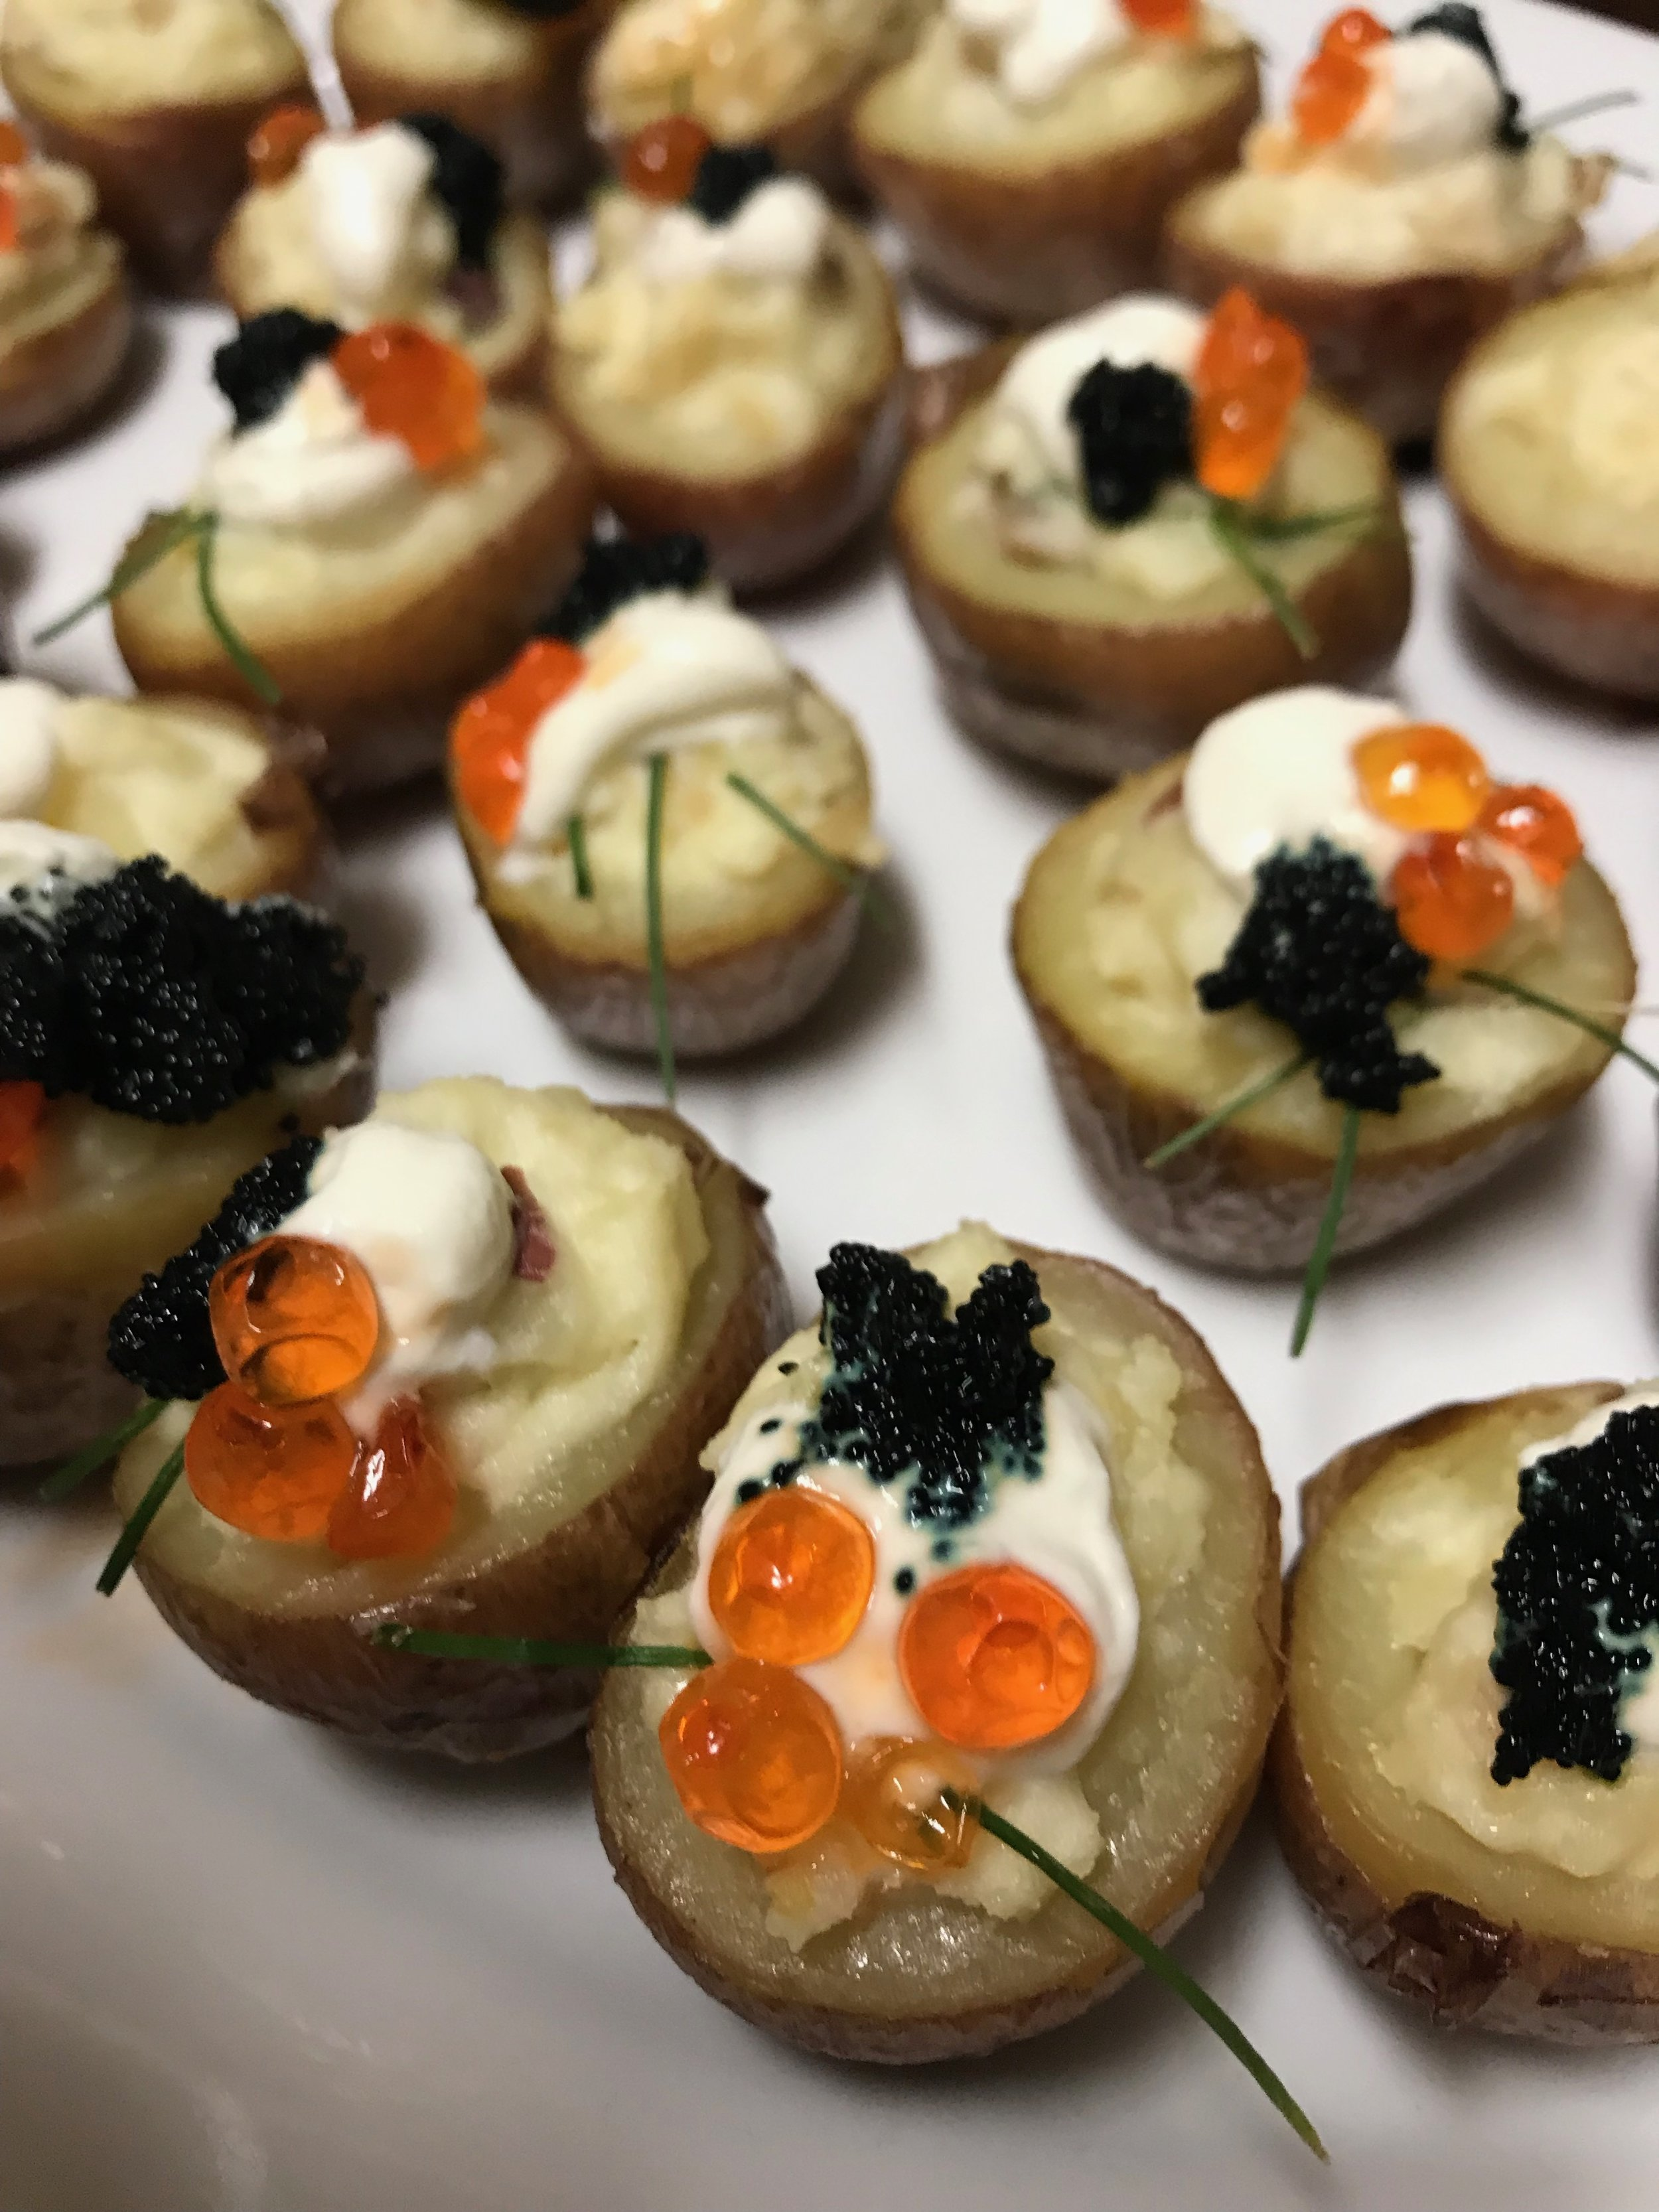 New potatoes Duchesse with NW Echo Falls Salmon caviar and Icelandic Capelin caviar